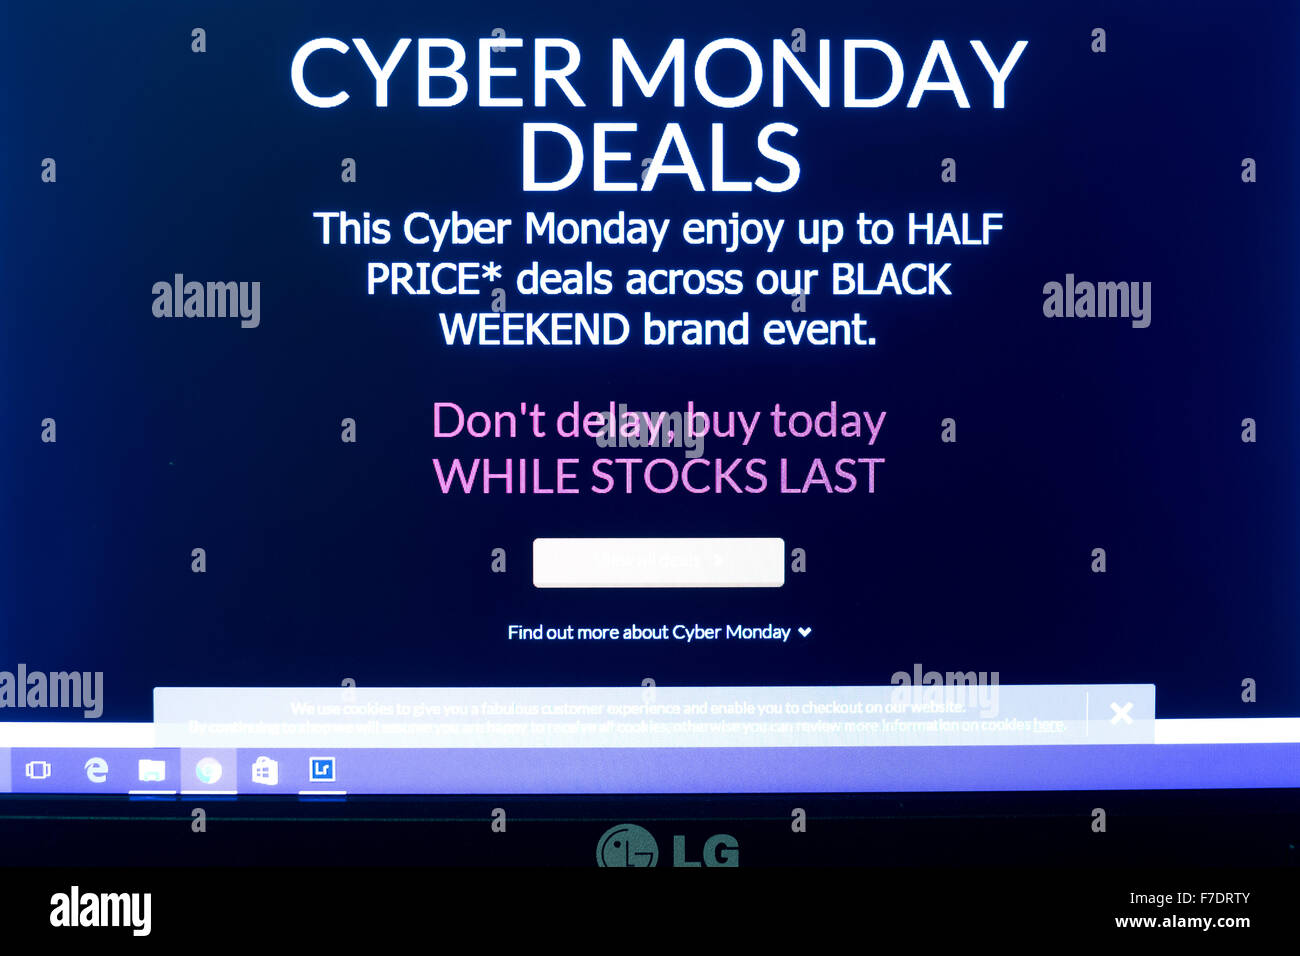 Cyber Monday  biggest online shopping day of the year, online retails are expecting a very busy day with record - Stock Image